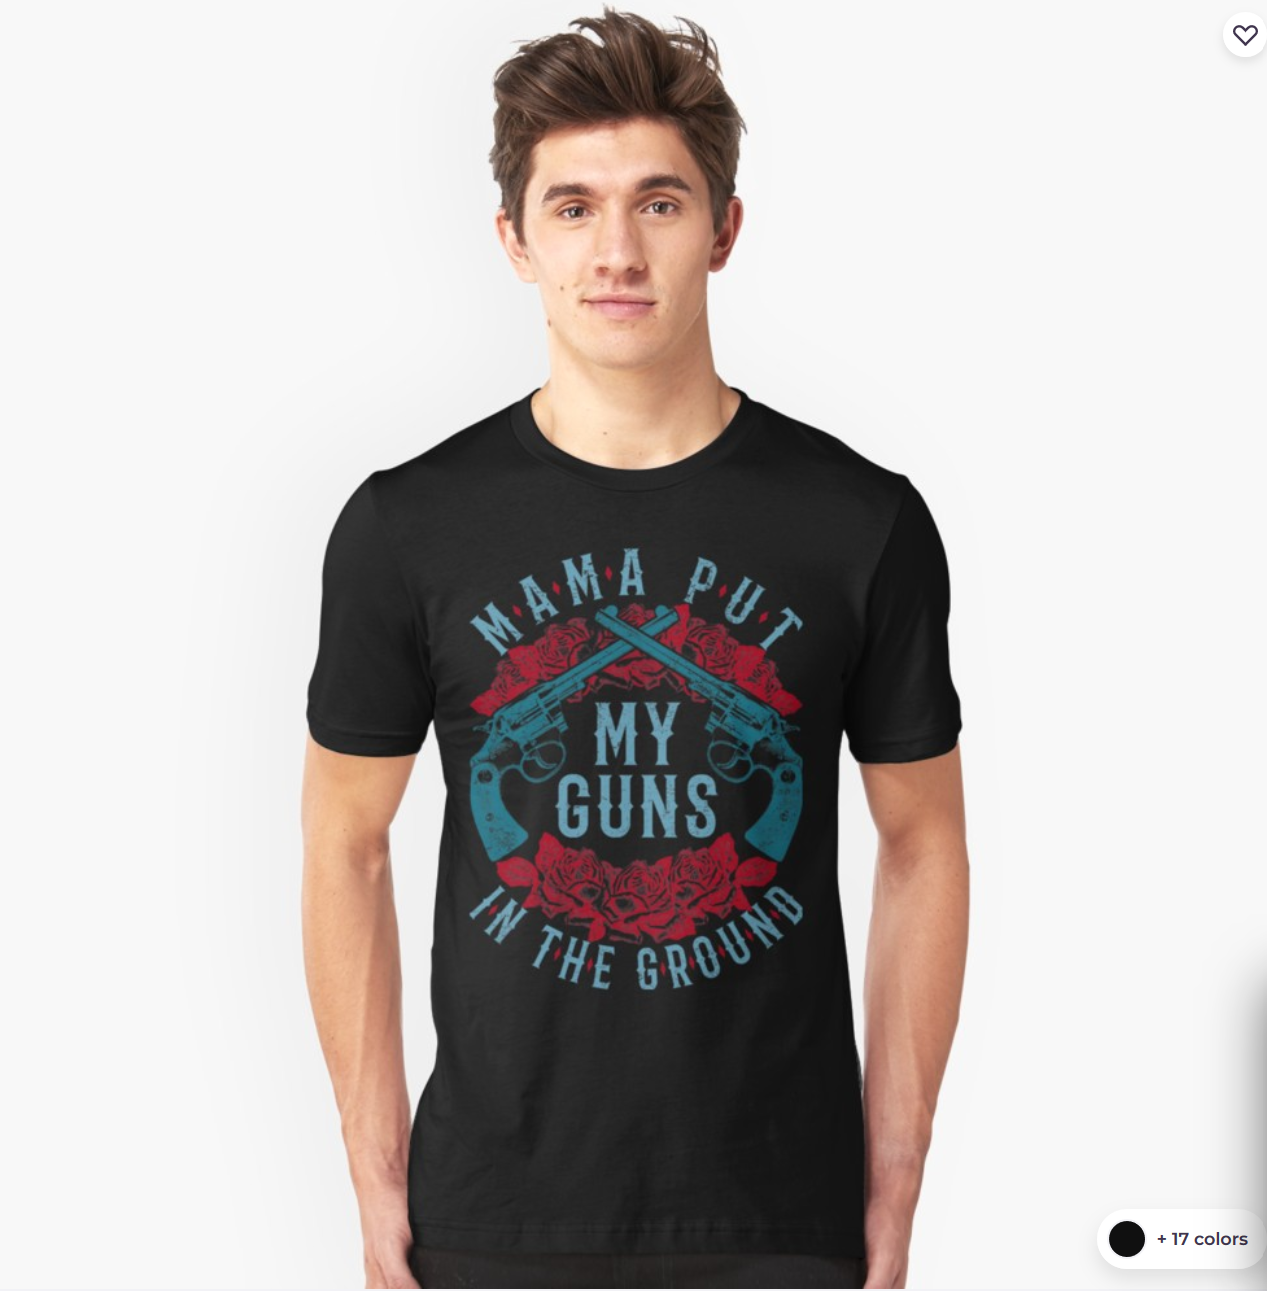 Buy Guns N' Roses t-shirt online with lyrics . Available in different colors of t-shirts (male or female). #gunsnroses #gunsnrosestshirt #axlrose #slash #duffmckagan #gnfnr #notinthislifetime #nightrain #gnr #rocktee #rocktshirt #style #rocknroll #welcometothejungle #nighttrain #paradisecity